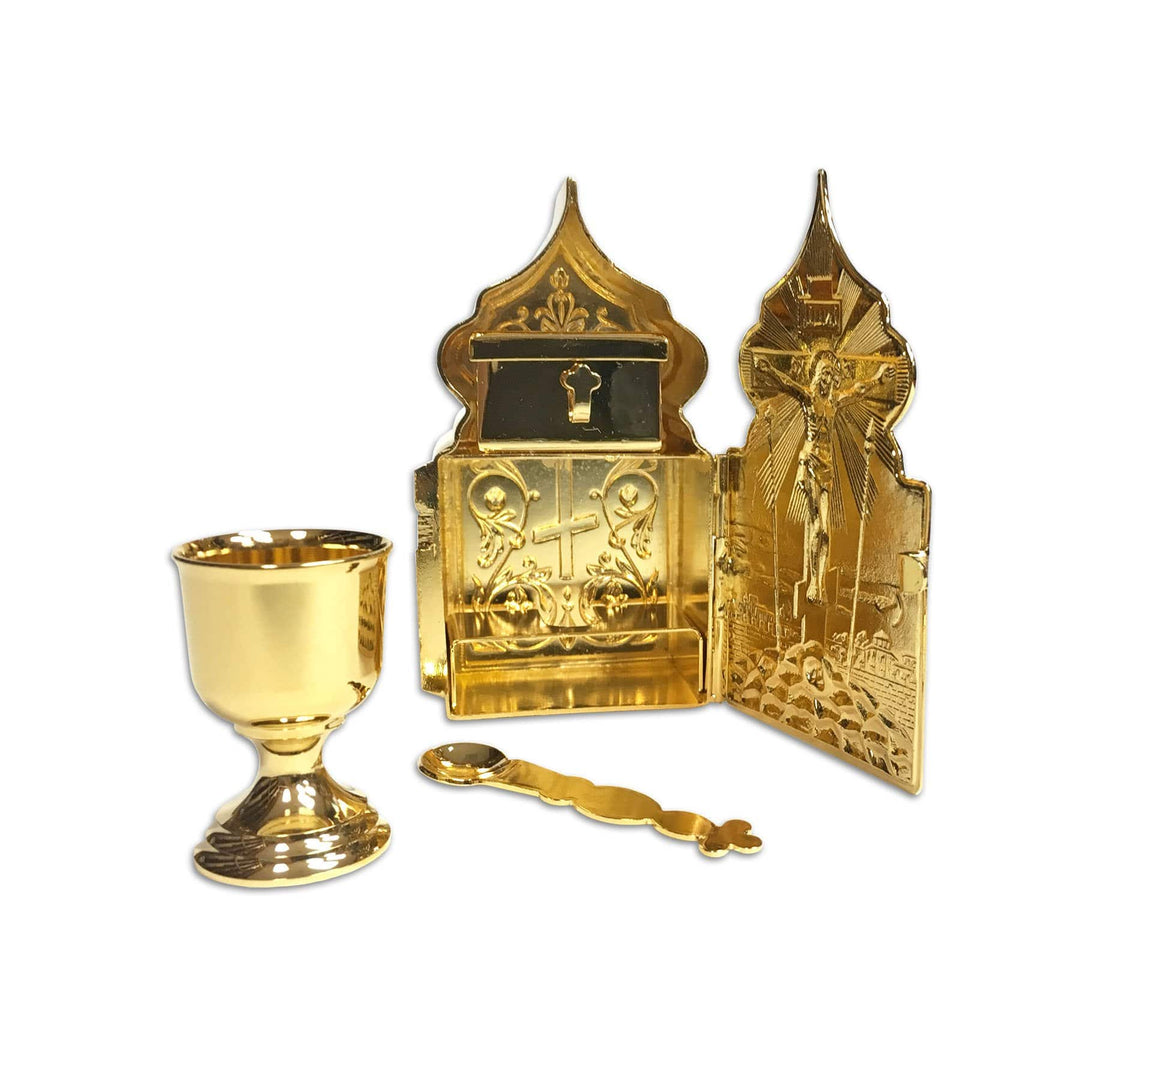 Travel Tabernacle: Gold-plated